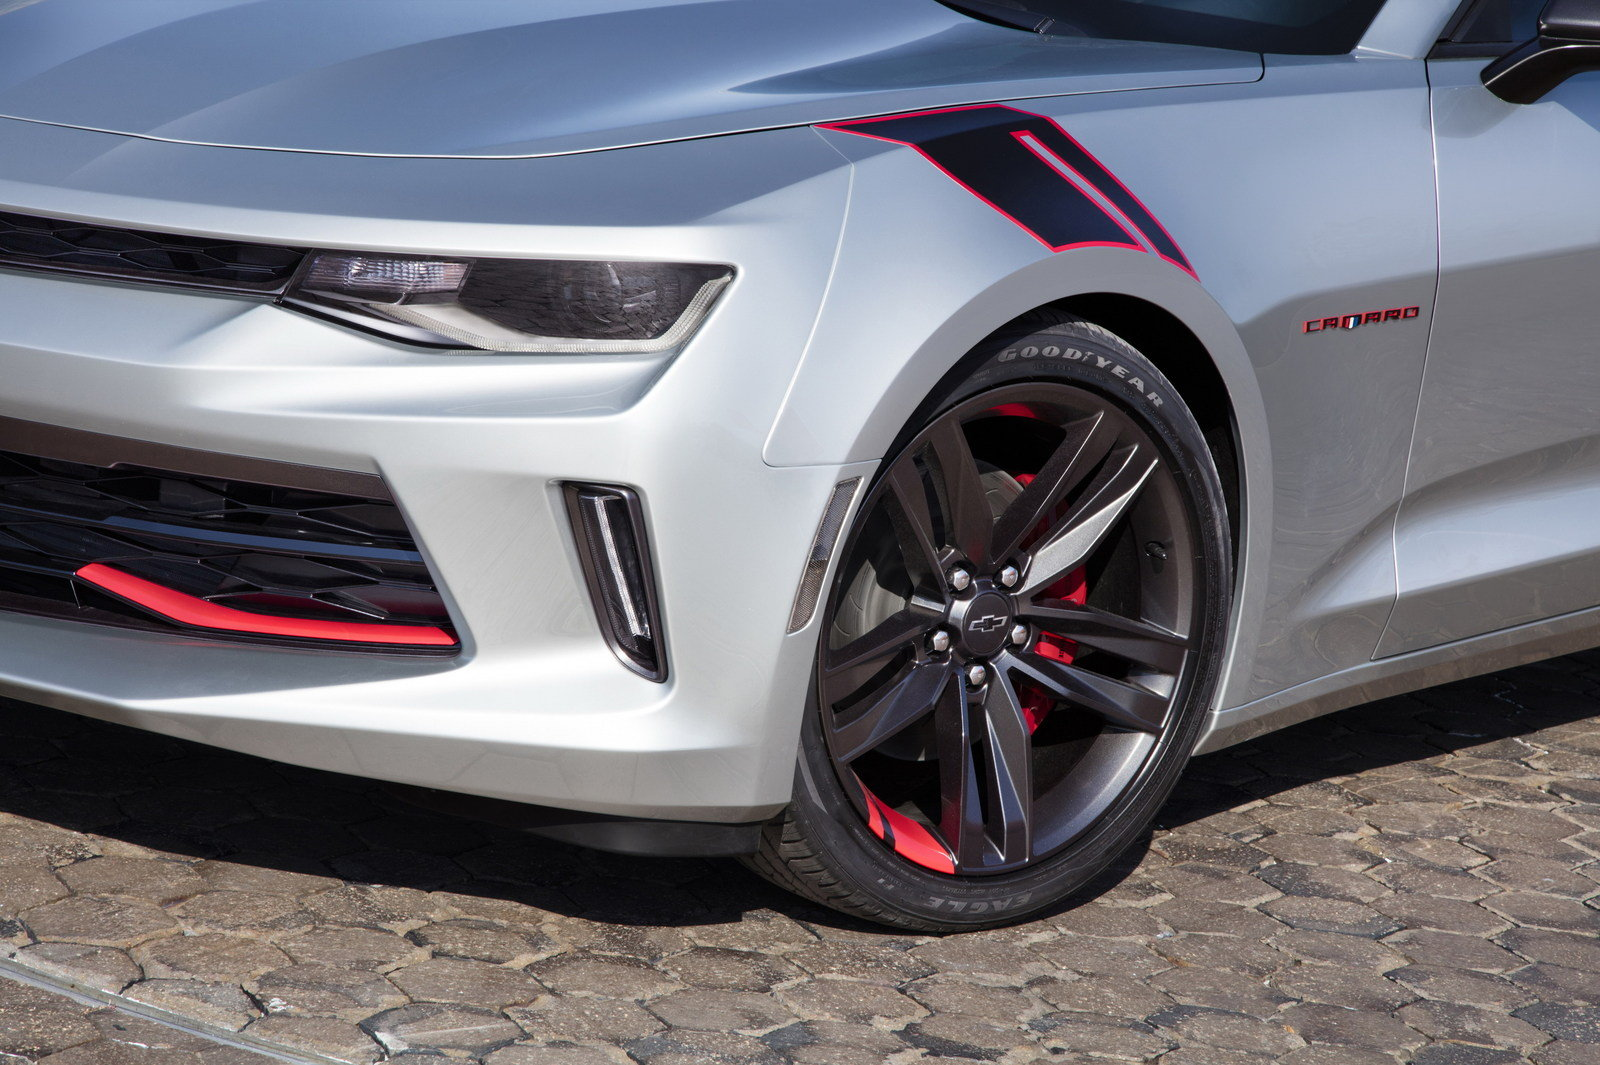 2016 chevrolet camaro red line series concept picture 652254 car review top speed. Black Bedroom Furniture Sets. Home Design Ideas